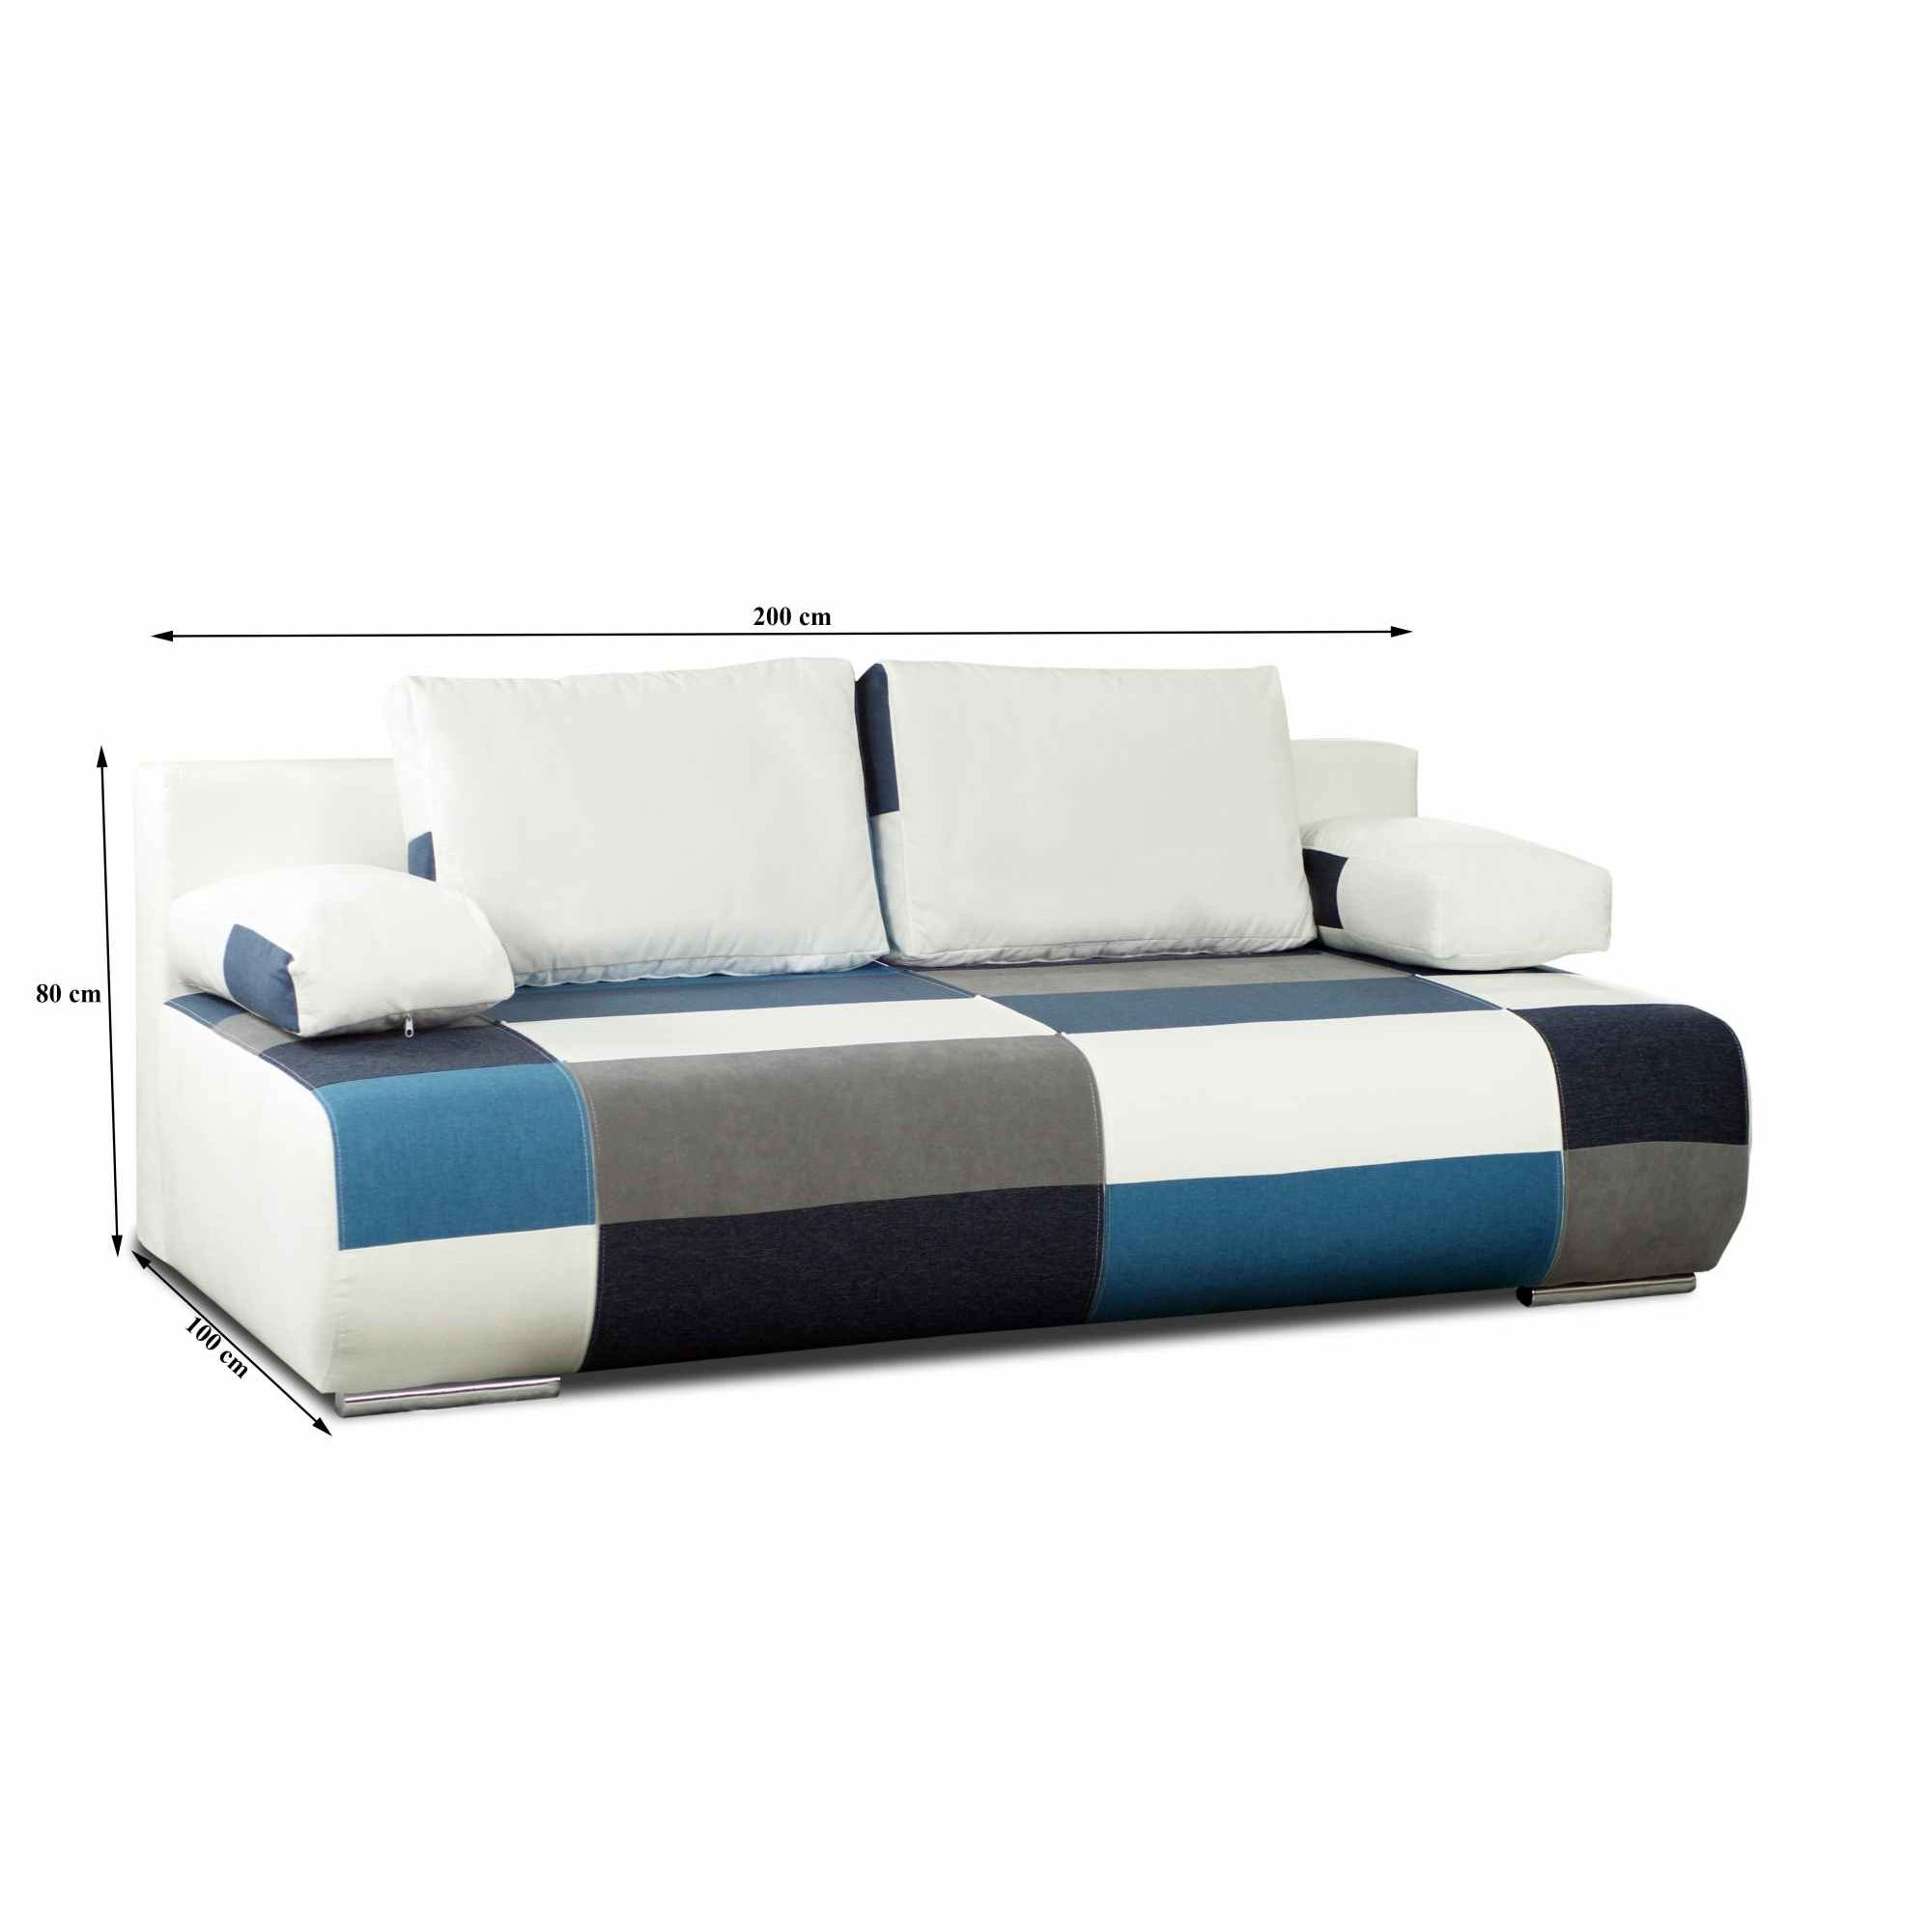 Deco in paris canape 3 places convertible design en for Canape convertible en tissu